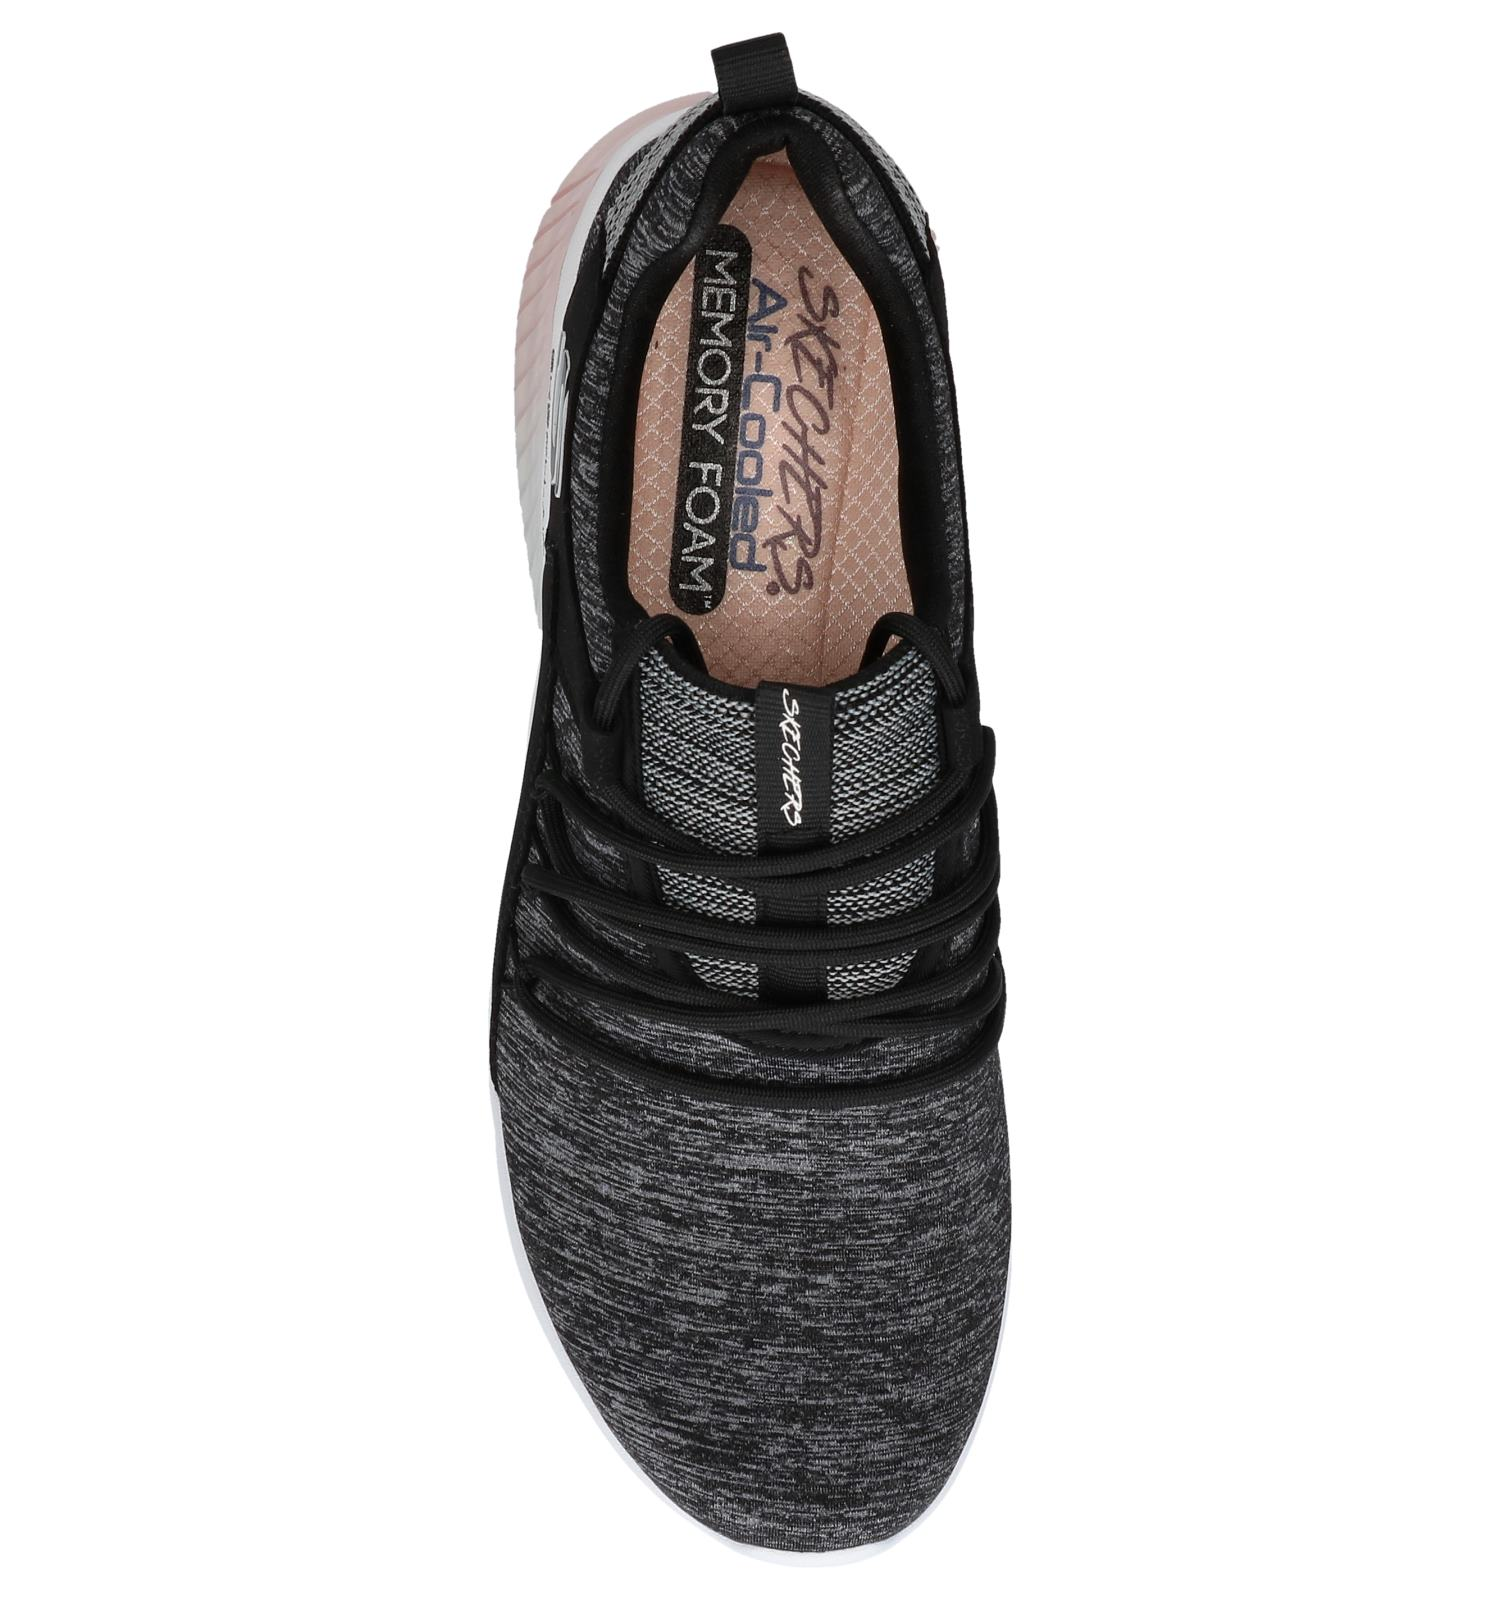 Donkergrijze Slip on Sneakers Skechers Skech air | TORFS.BE